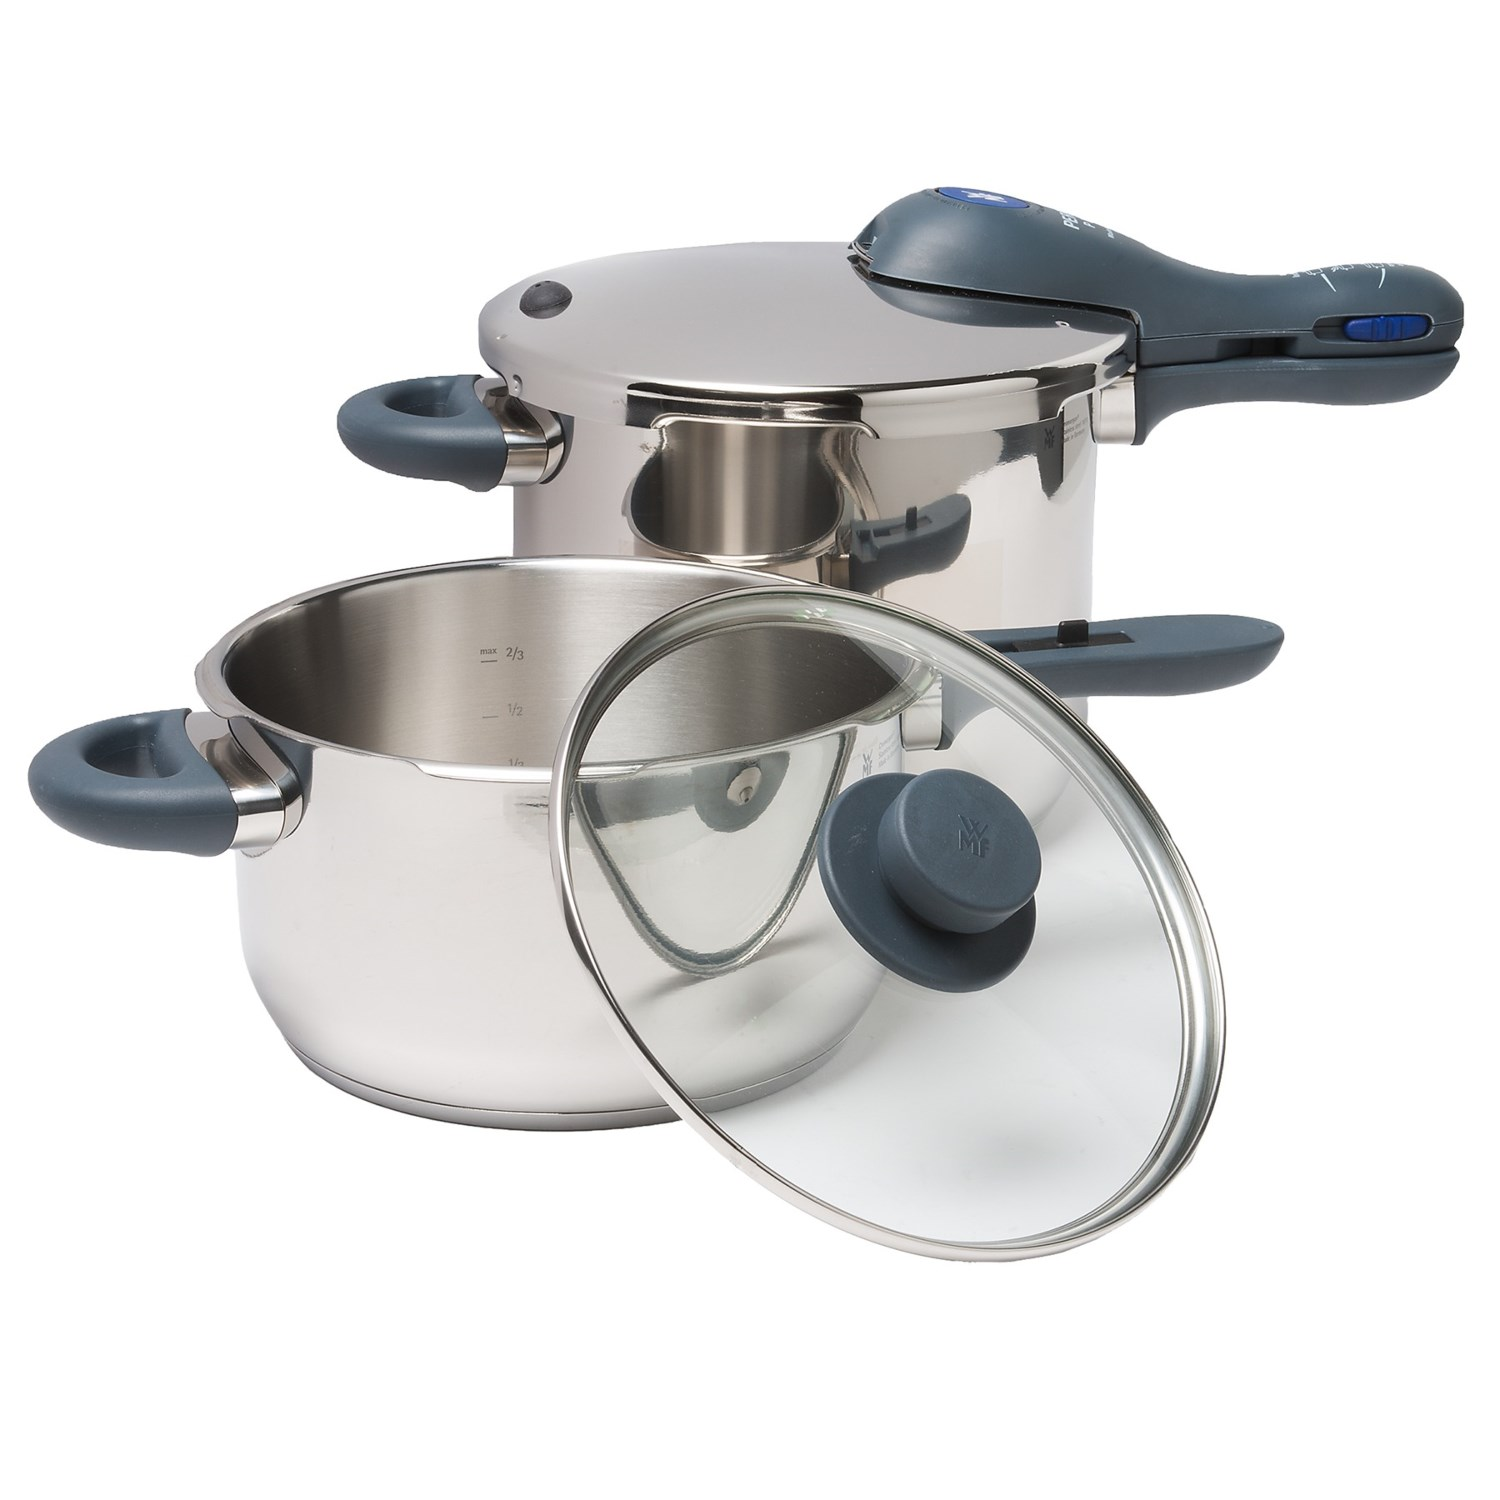 "18/10 stainless steel construction 4.5 qt. pan: 6.5 qt. pan: Care: Hand wash Cooking indicator uses colored rings to indicate cooking level Diameter: 9"" Diameter: 9"" Height: 5"" Height: 7-1/2"" Made in Germany Material: Stainless steel, composite, glass Overstock. Let WMF's Perfect Plus pressure cooker set introduce you to the convenience of cooking vegetables, meats and more in about 1/3 of their normal time! Safe, easy to use, and made of durable stainless steel. Safety valve for easily releasing pressure away from user Set includes 6.5 qt. pressure cooker base with lid, 4.5 qt. pressure cooker base, sealing ring and glass lid TransTherm base evenly distributes heat Weight: 12 lb."